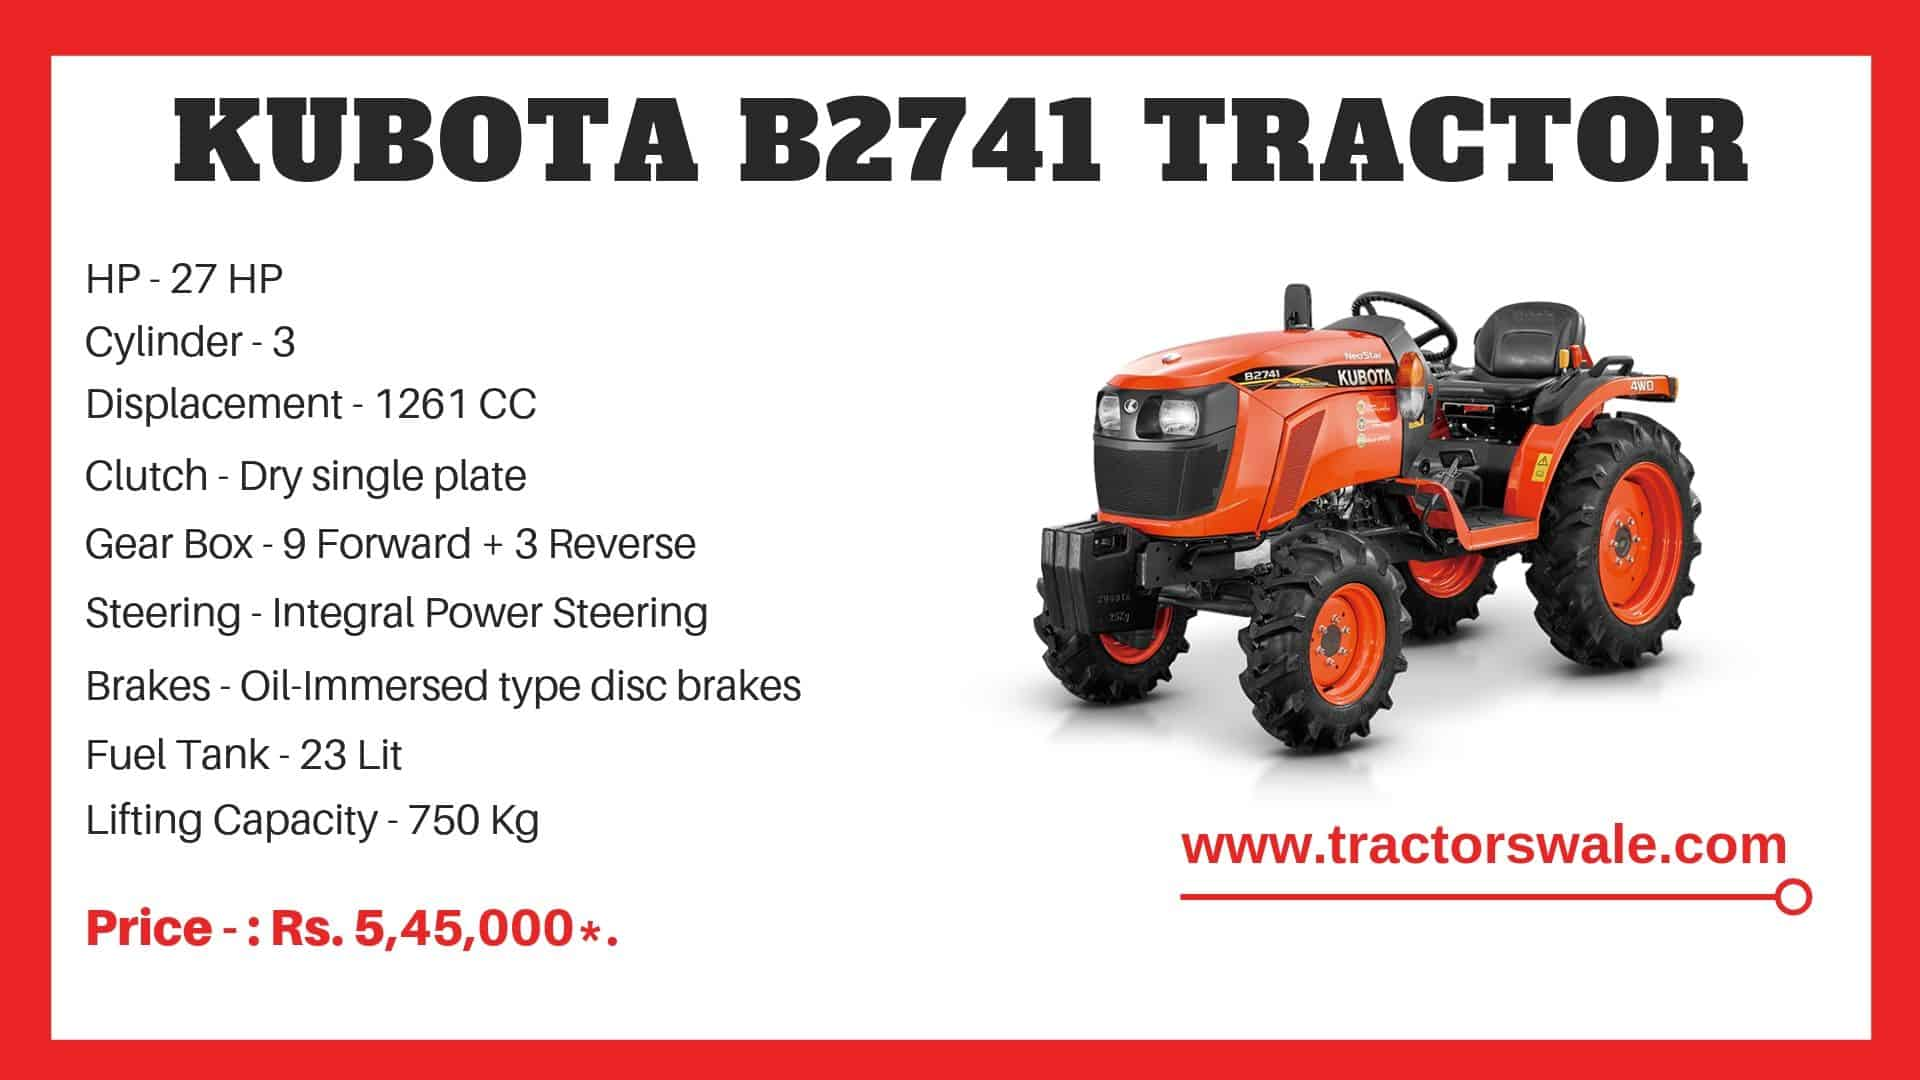 Specifications Of Kubota NeoStar B2741 Tractor